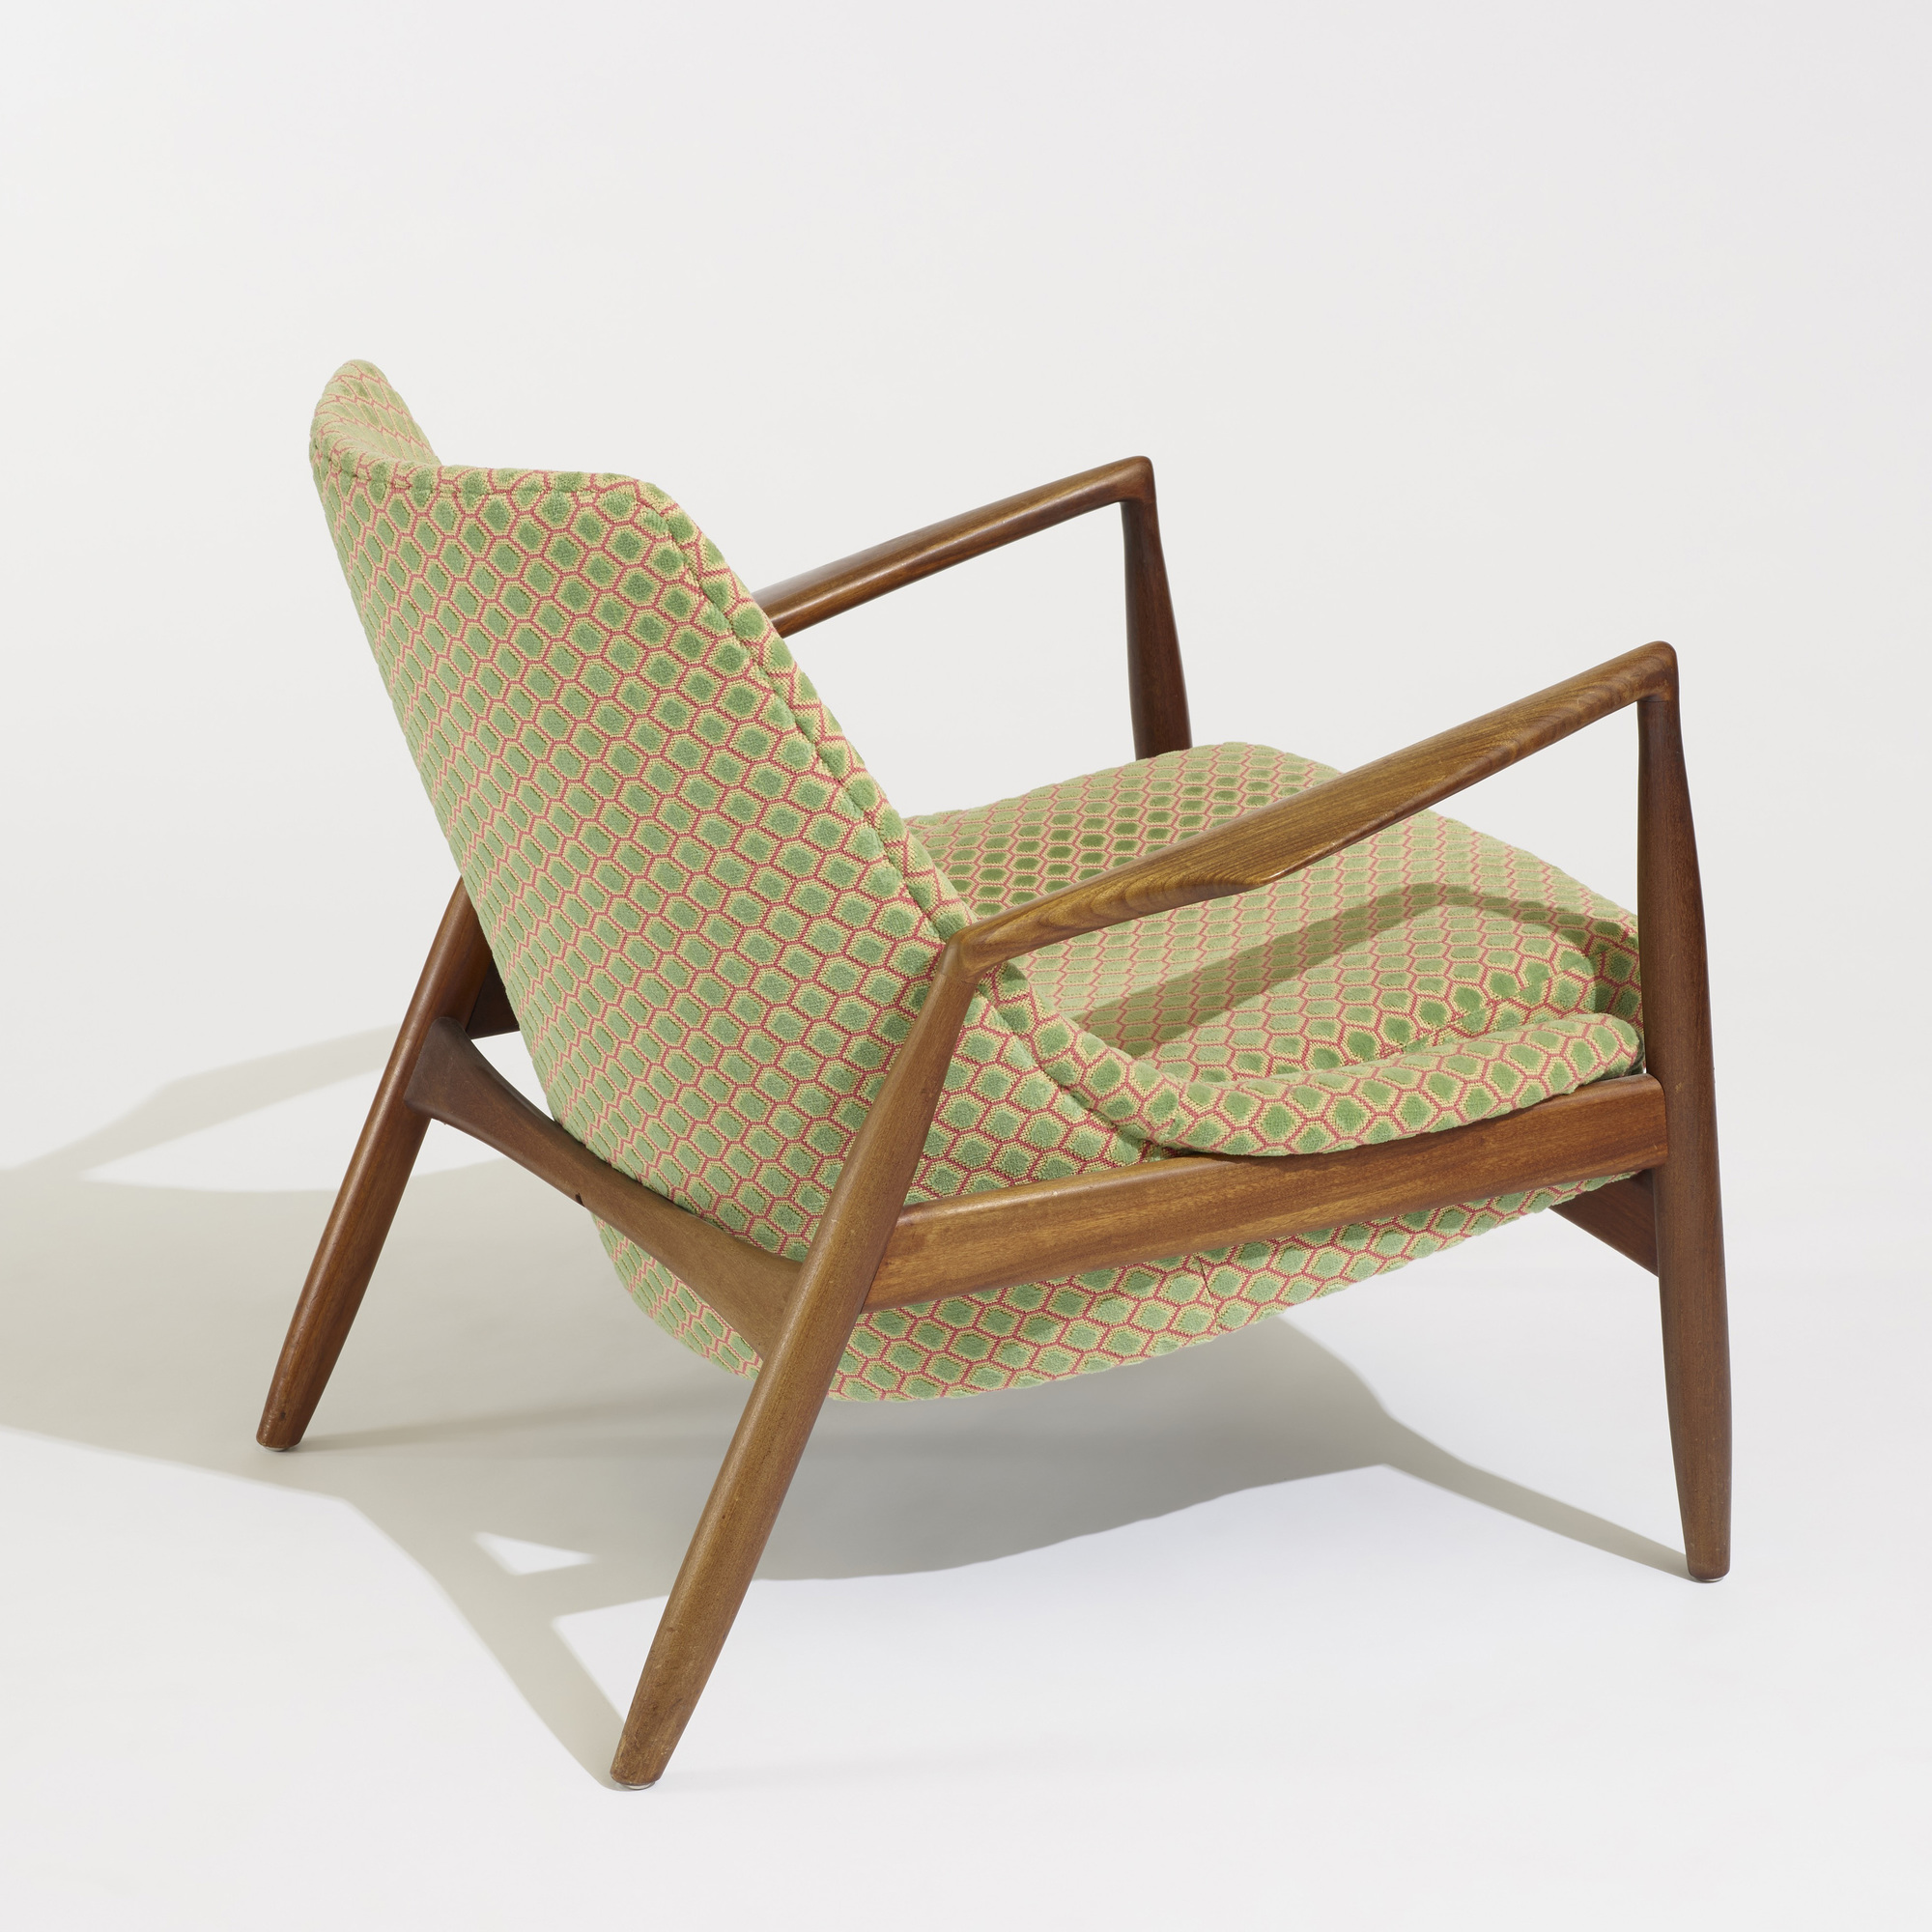 268: Ib Kofod-Larsen / lounge chairs, pair (3 of 4)